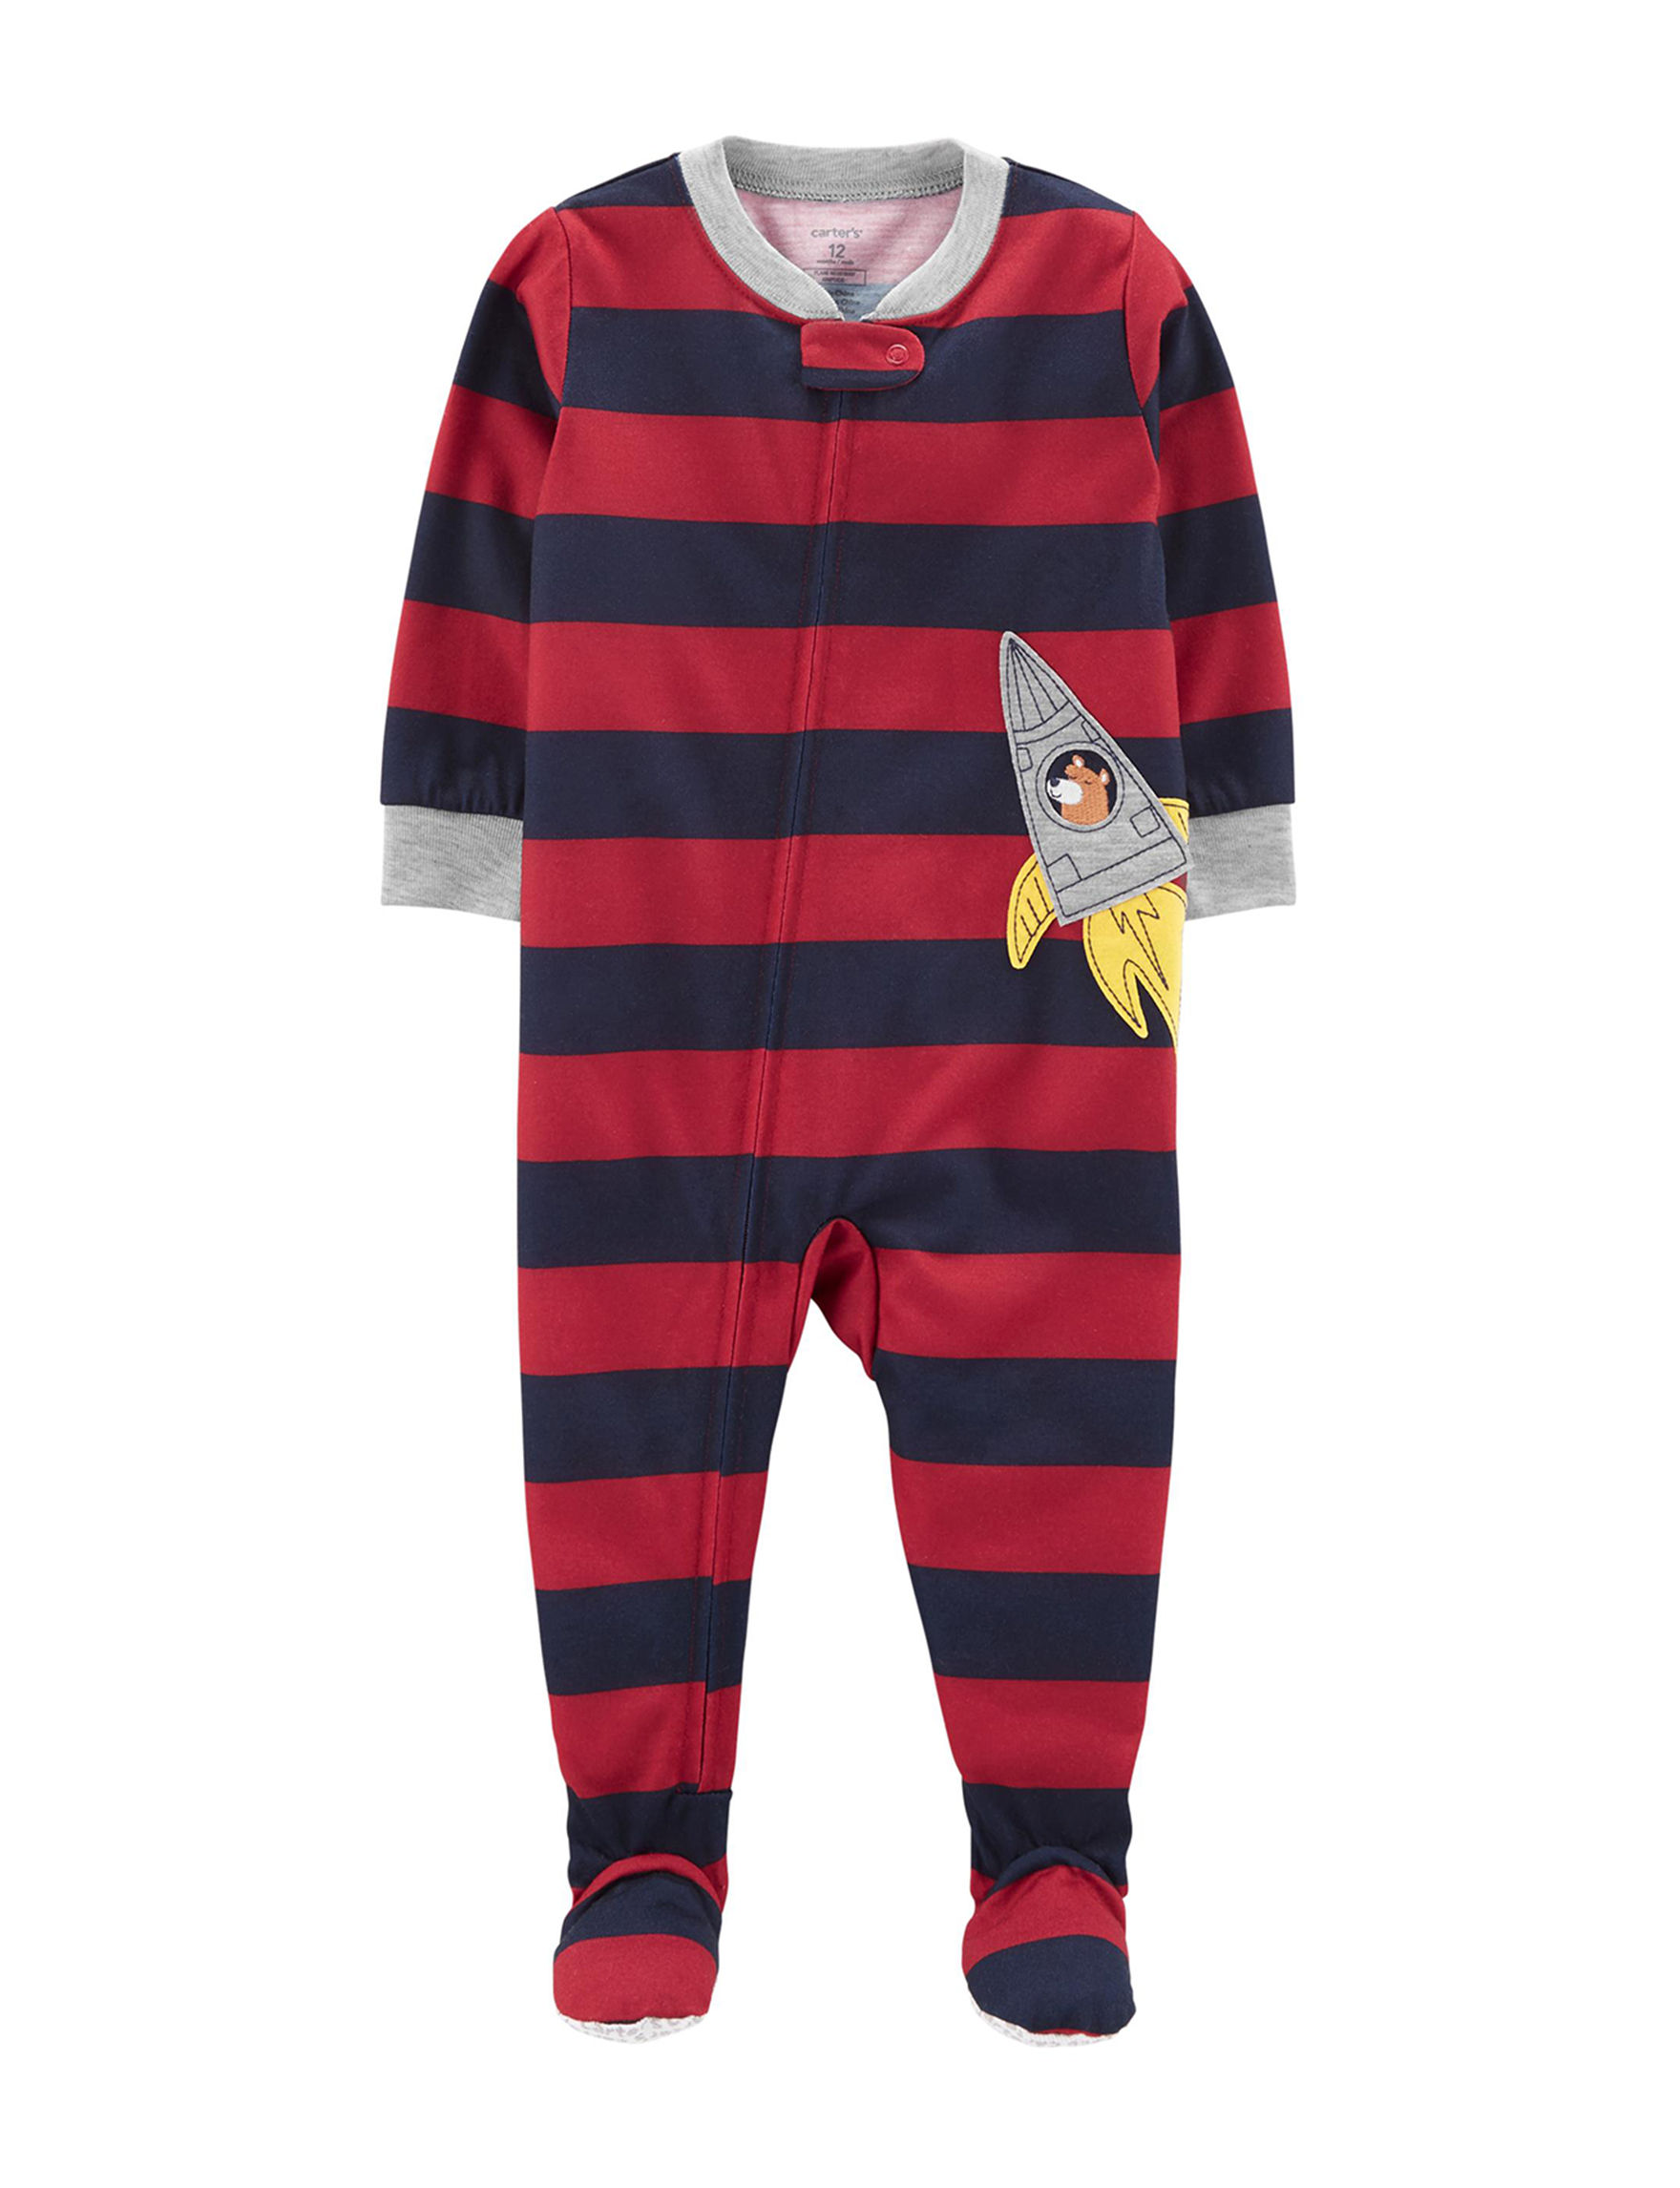 Carter's Red Stripe Pajama Sets